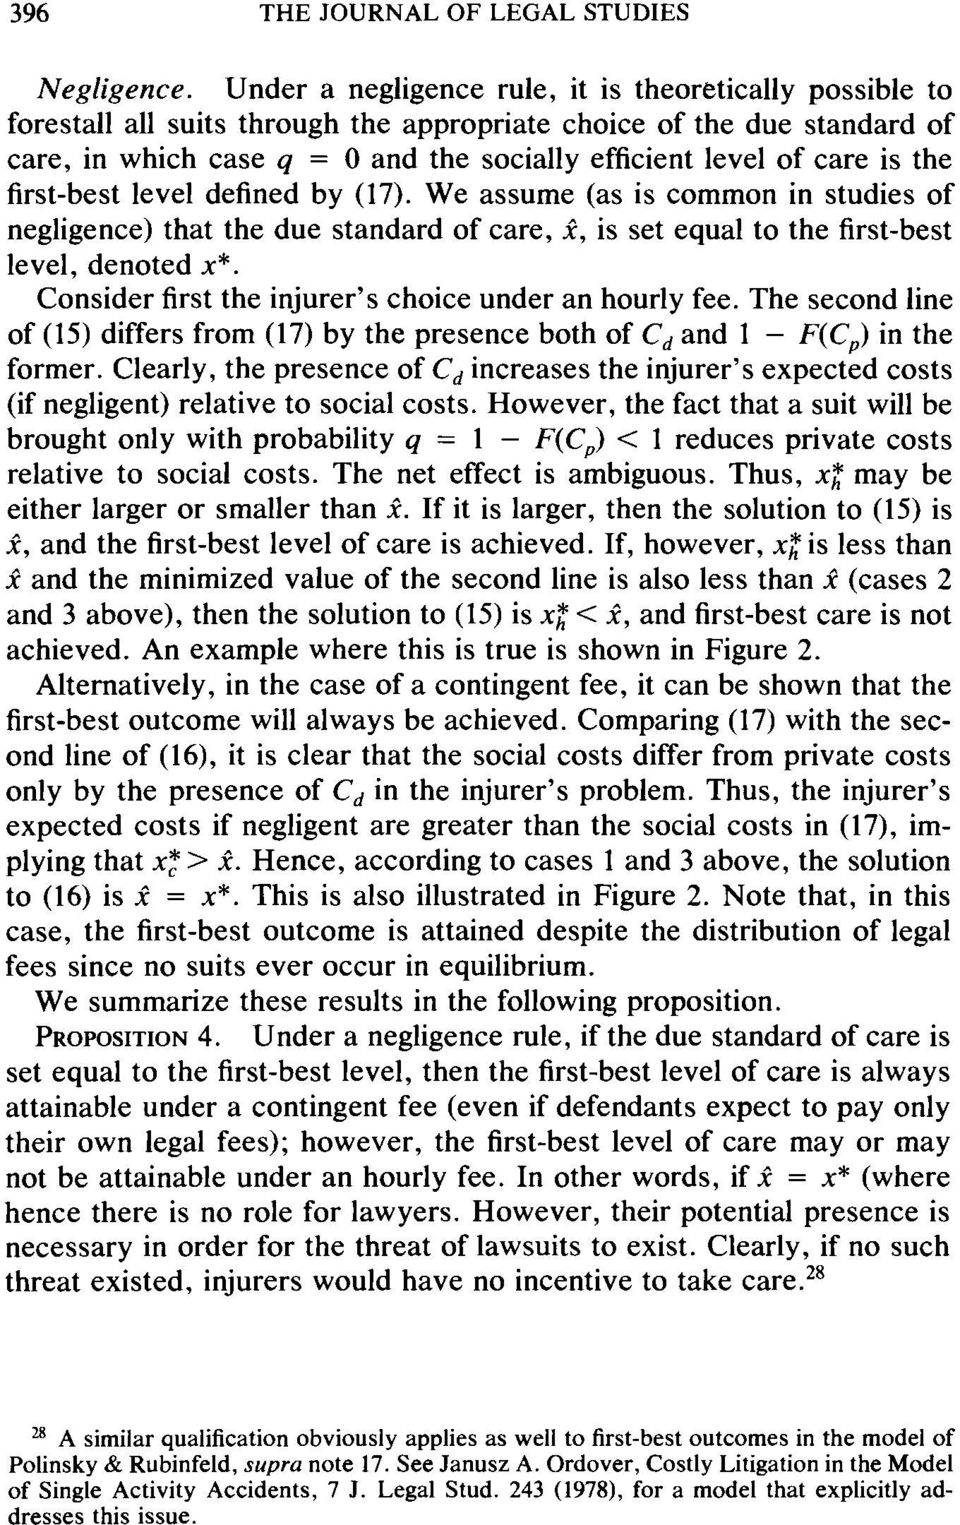 is the first-best level defined by (17). We assume (as is common in studies of negligence) that the due standard of care, x, is set equal to the first-best level, denoted x*.